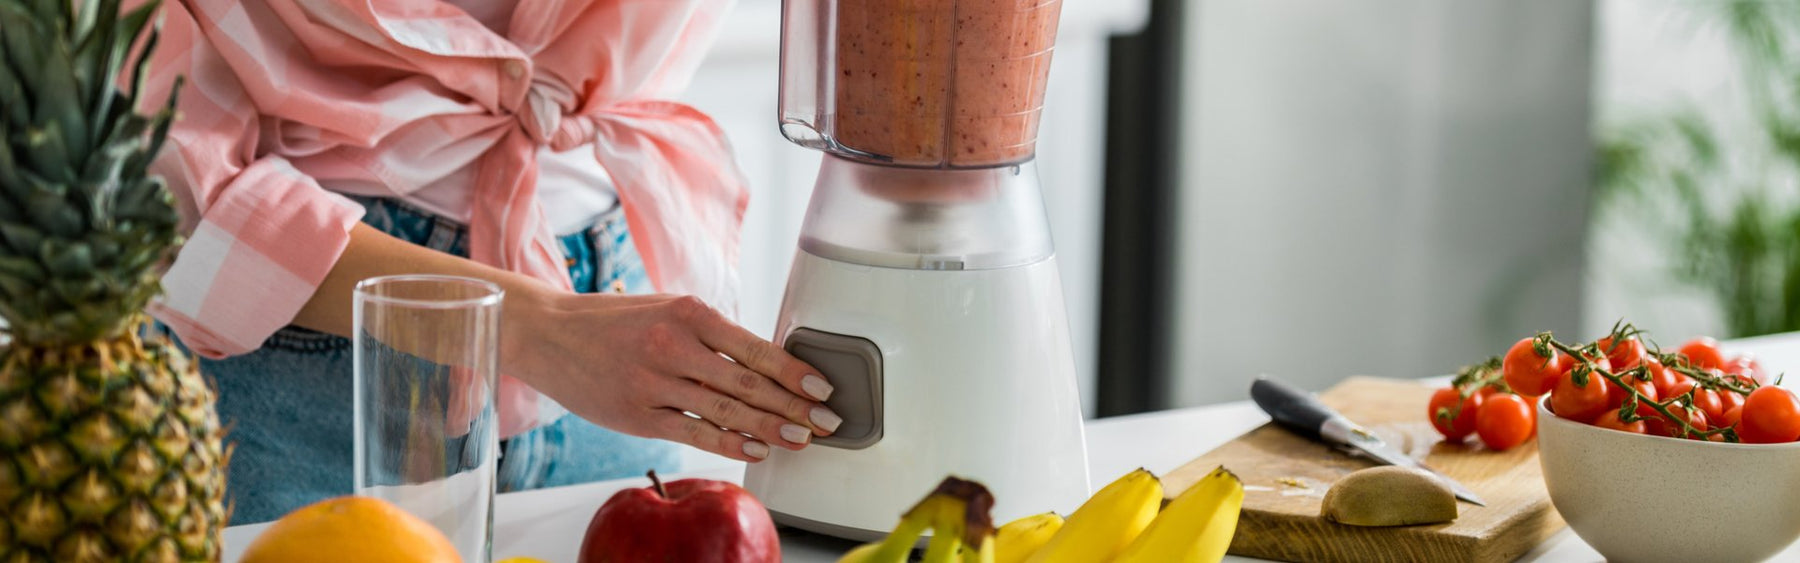 Woman making a smoothie in a blender from fruits and vegetables